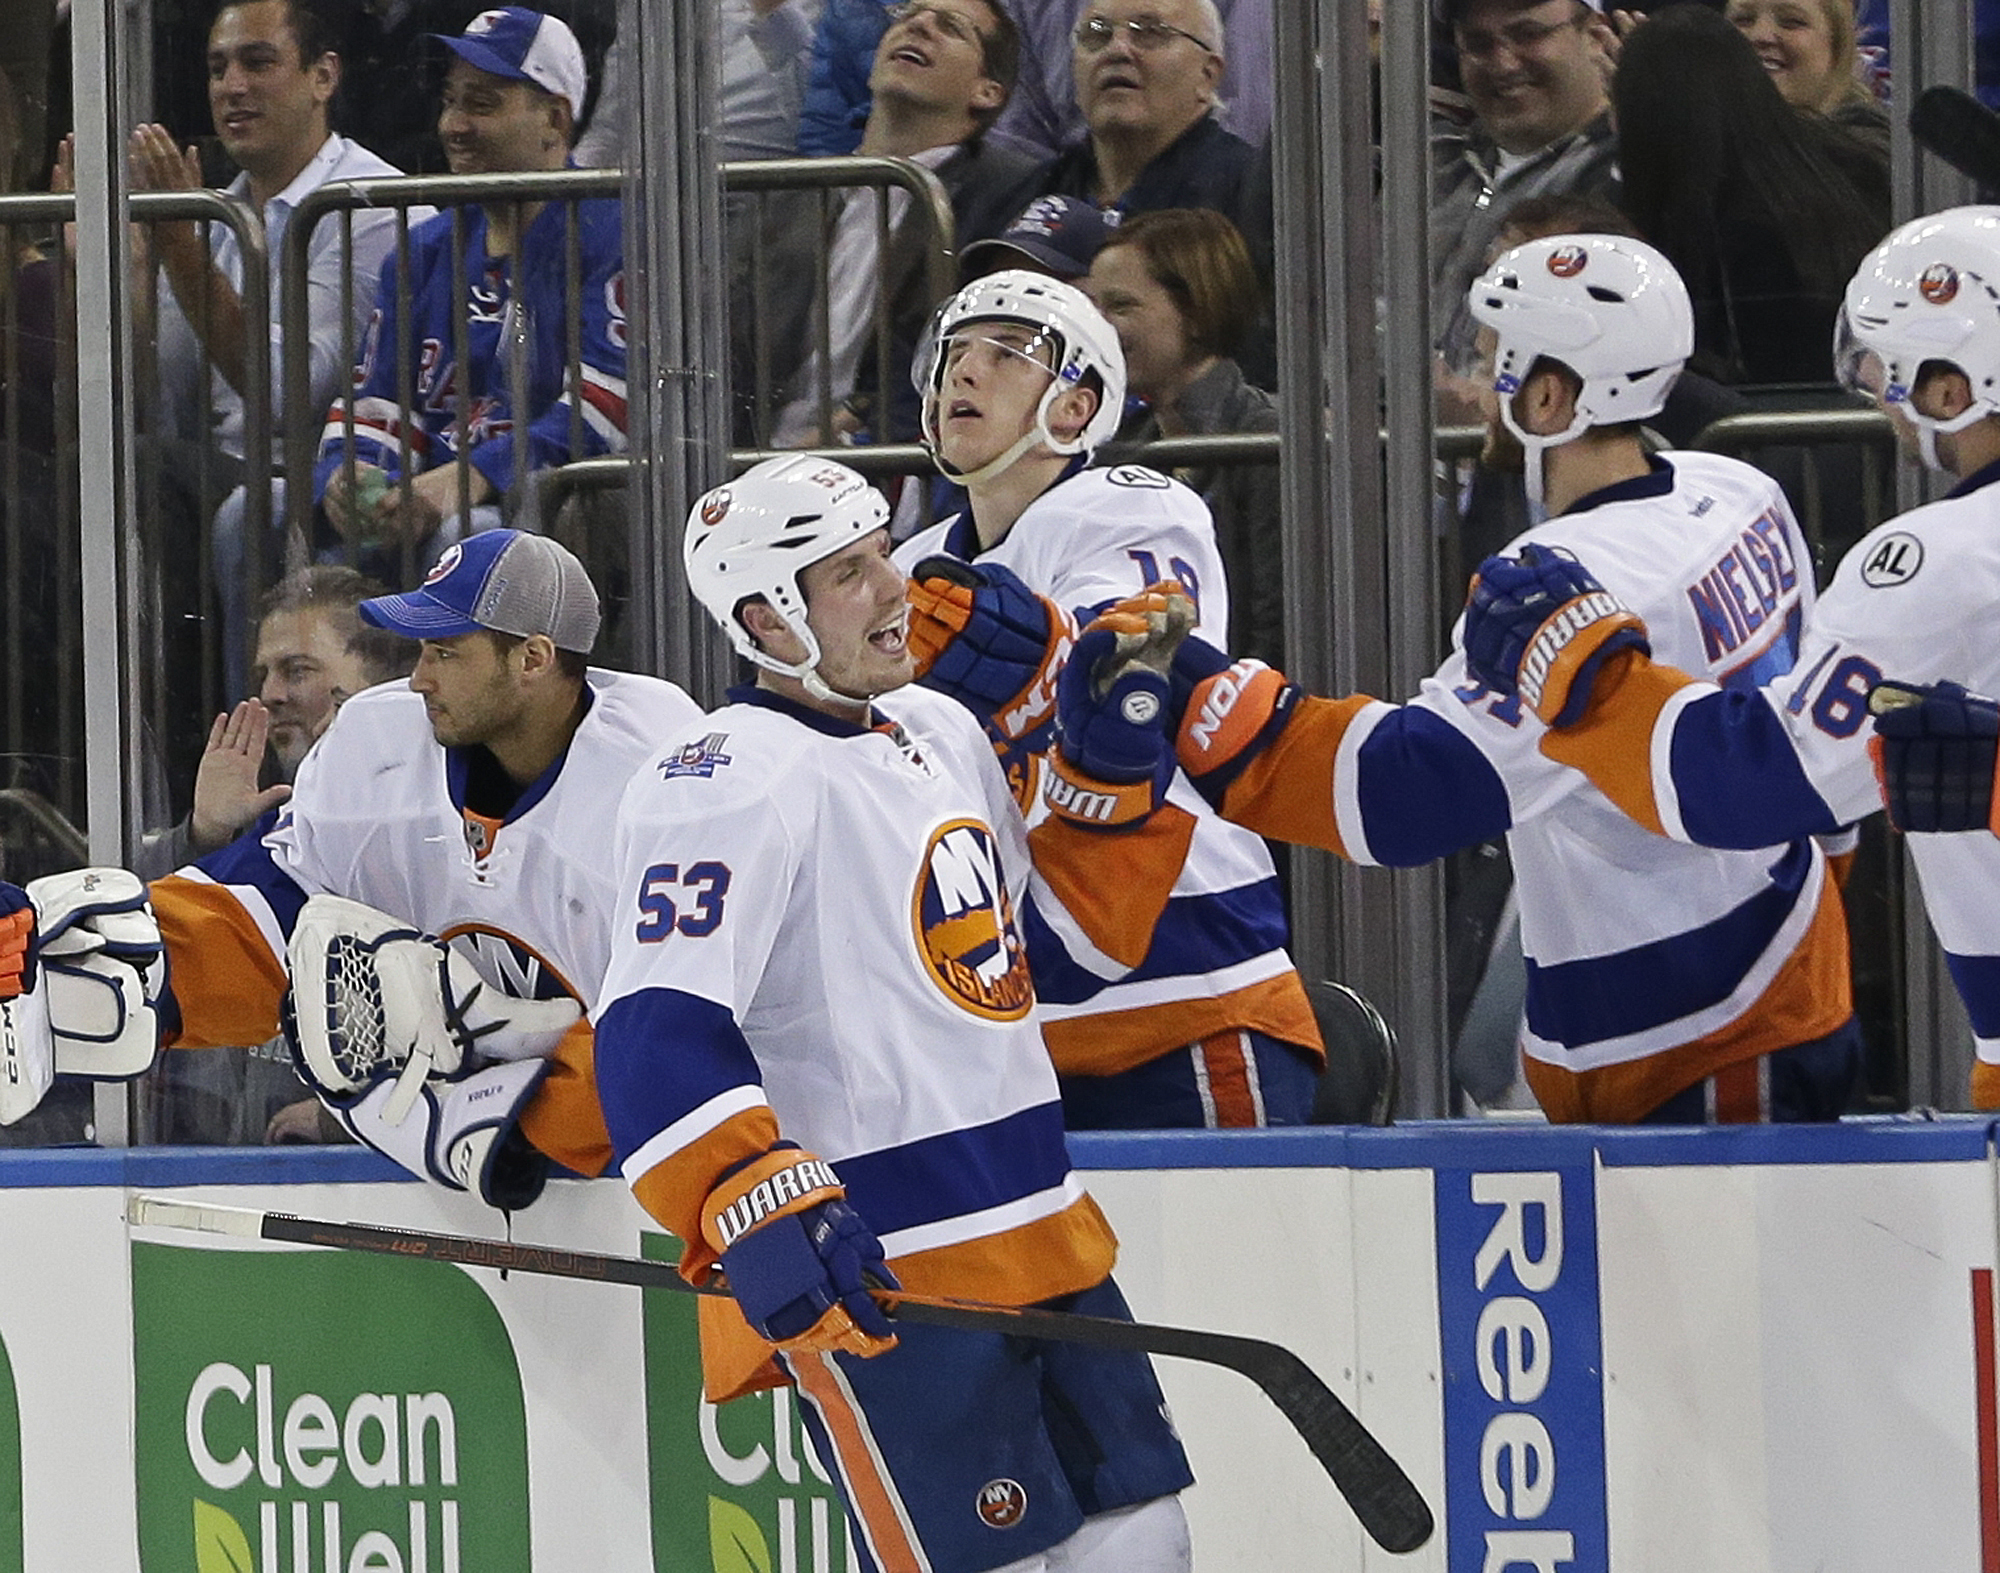 New York Islanders' Casey Cizikas (53) celebrates with teammates after scoring a goal during the second period of an NHL hockey game against the New York Rangers on Thursday, April 7, 2016, in New York. (AP Photo/Frank Franklin II)